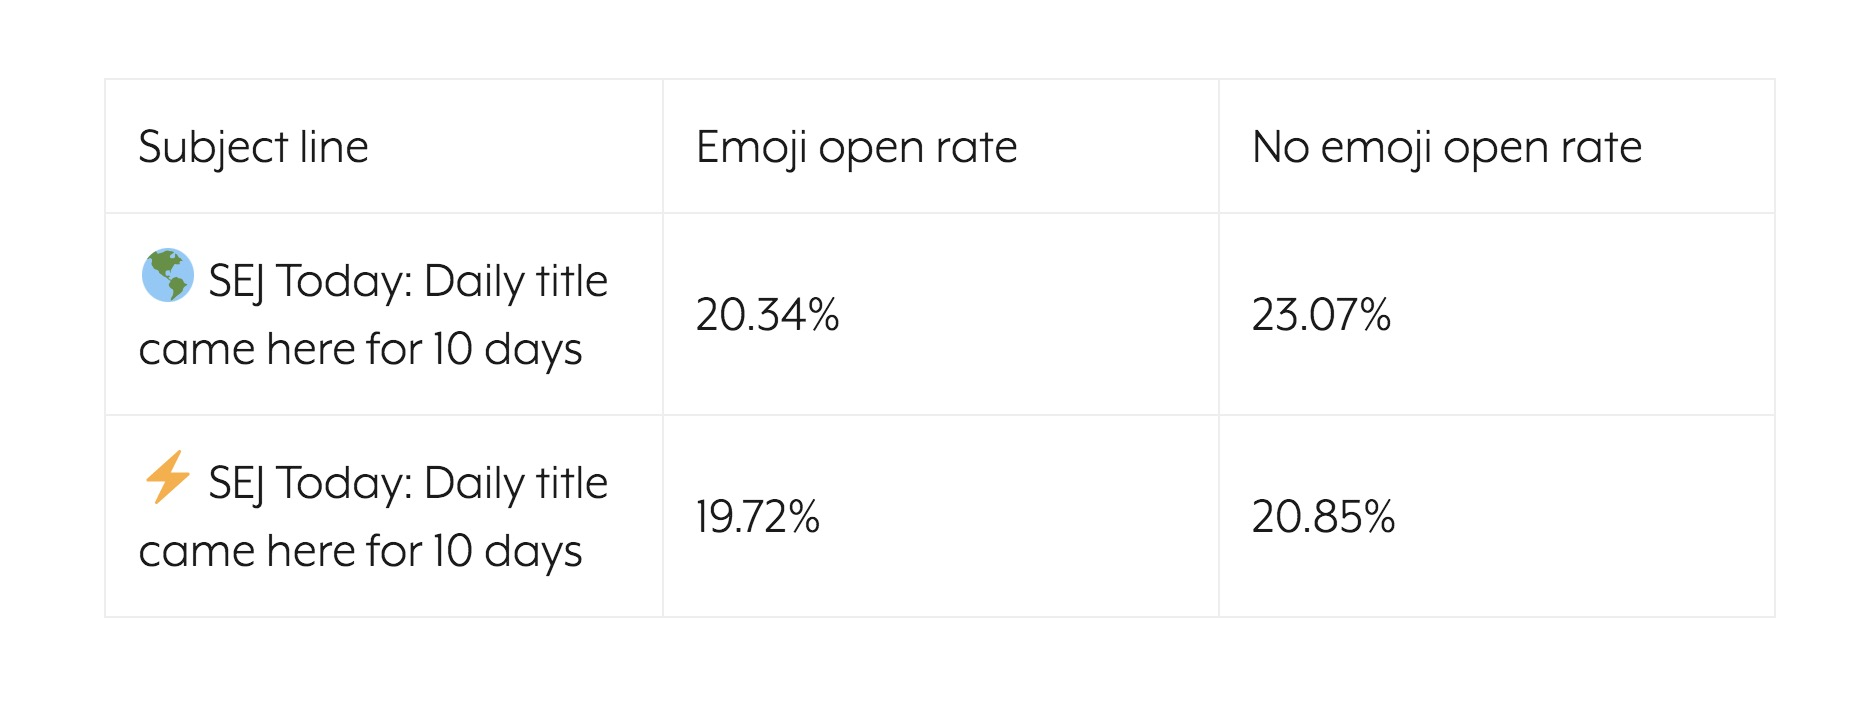 emoji open rate